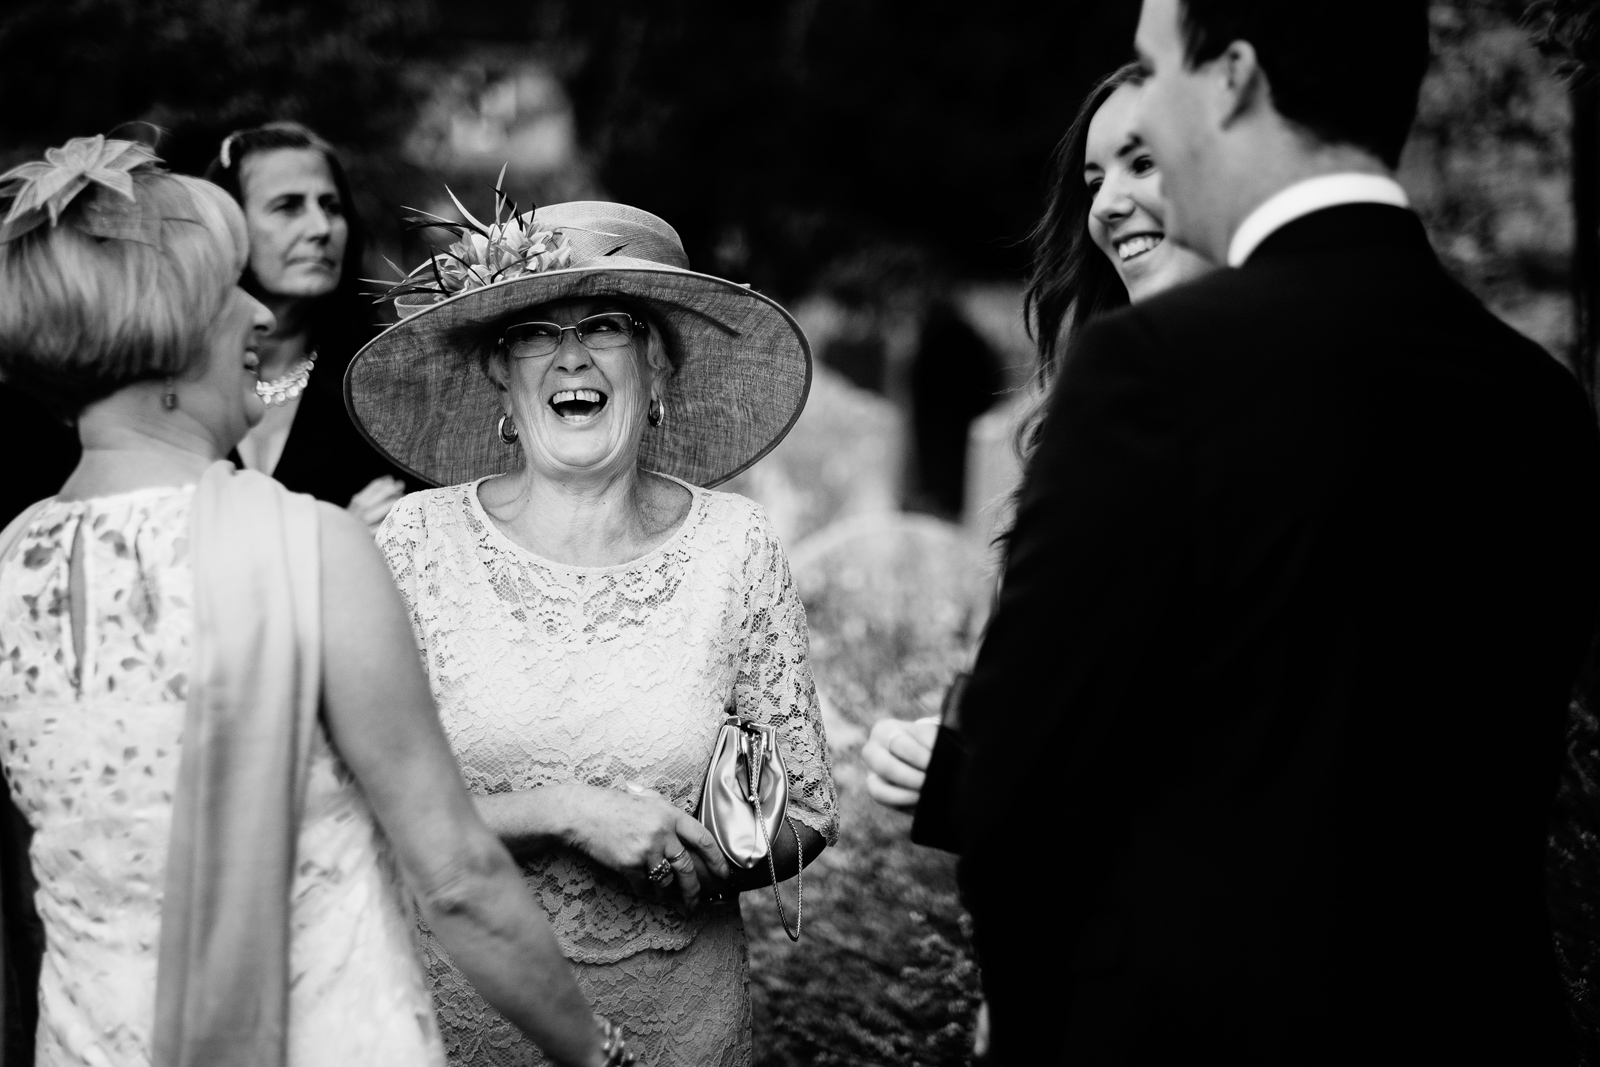 Guests at a wedding at Chinnor Church. By Sam and Steve Photography